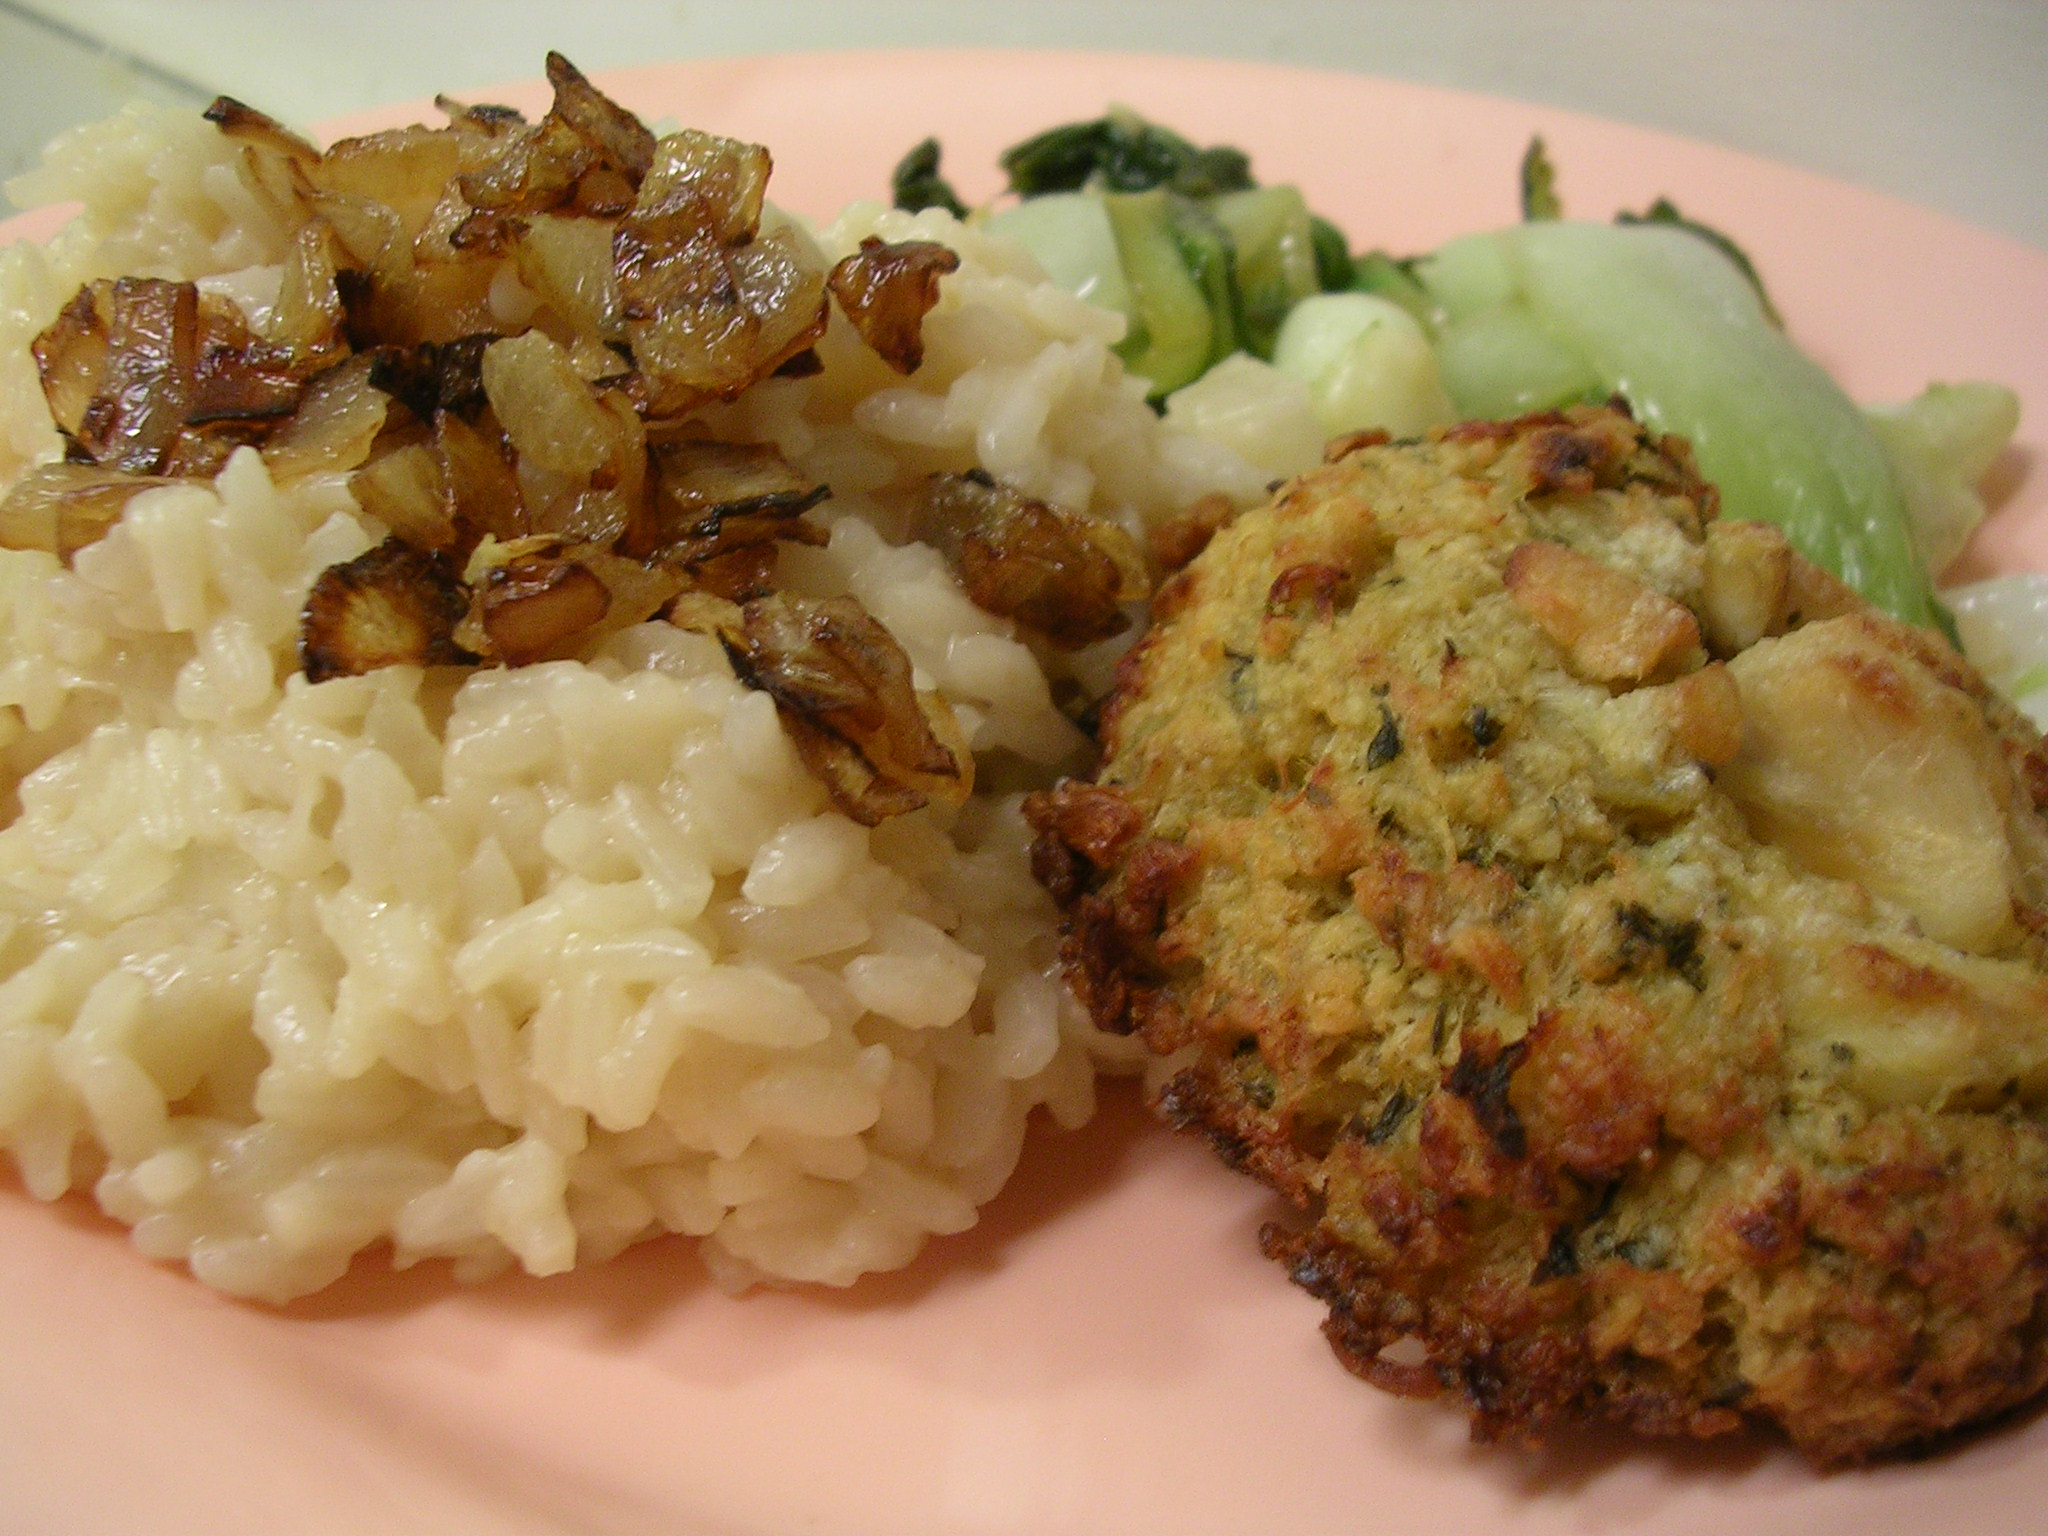 Basic risotto (topped with caramelized onions) and crab cake